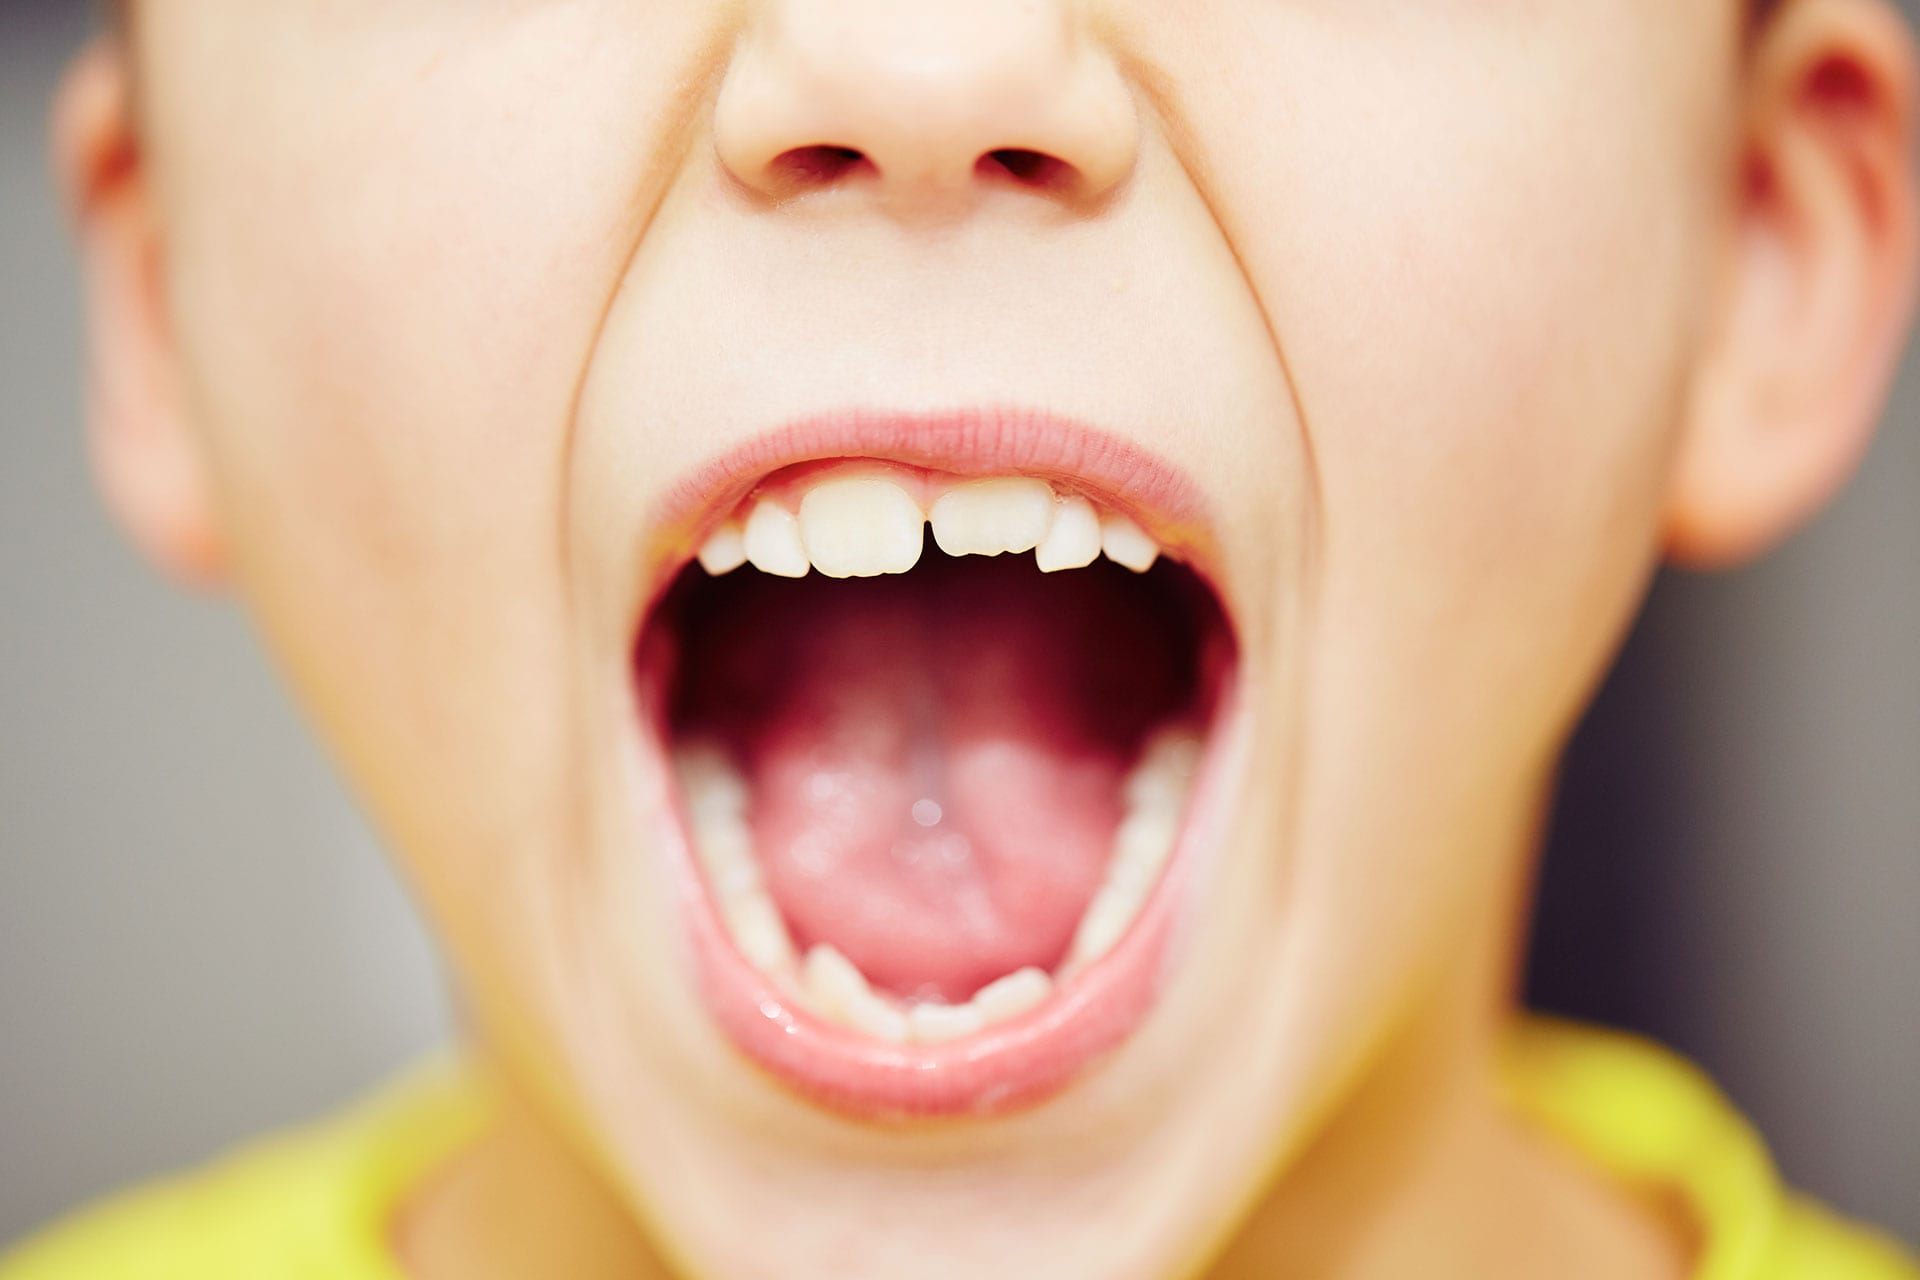 young boy with open mouth showing teeth